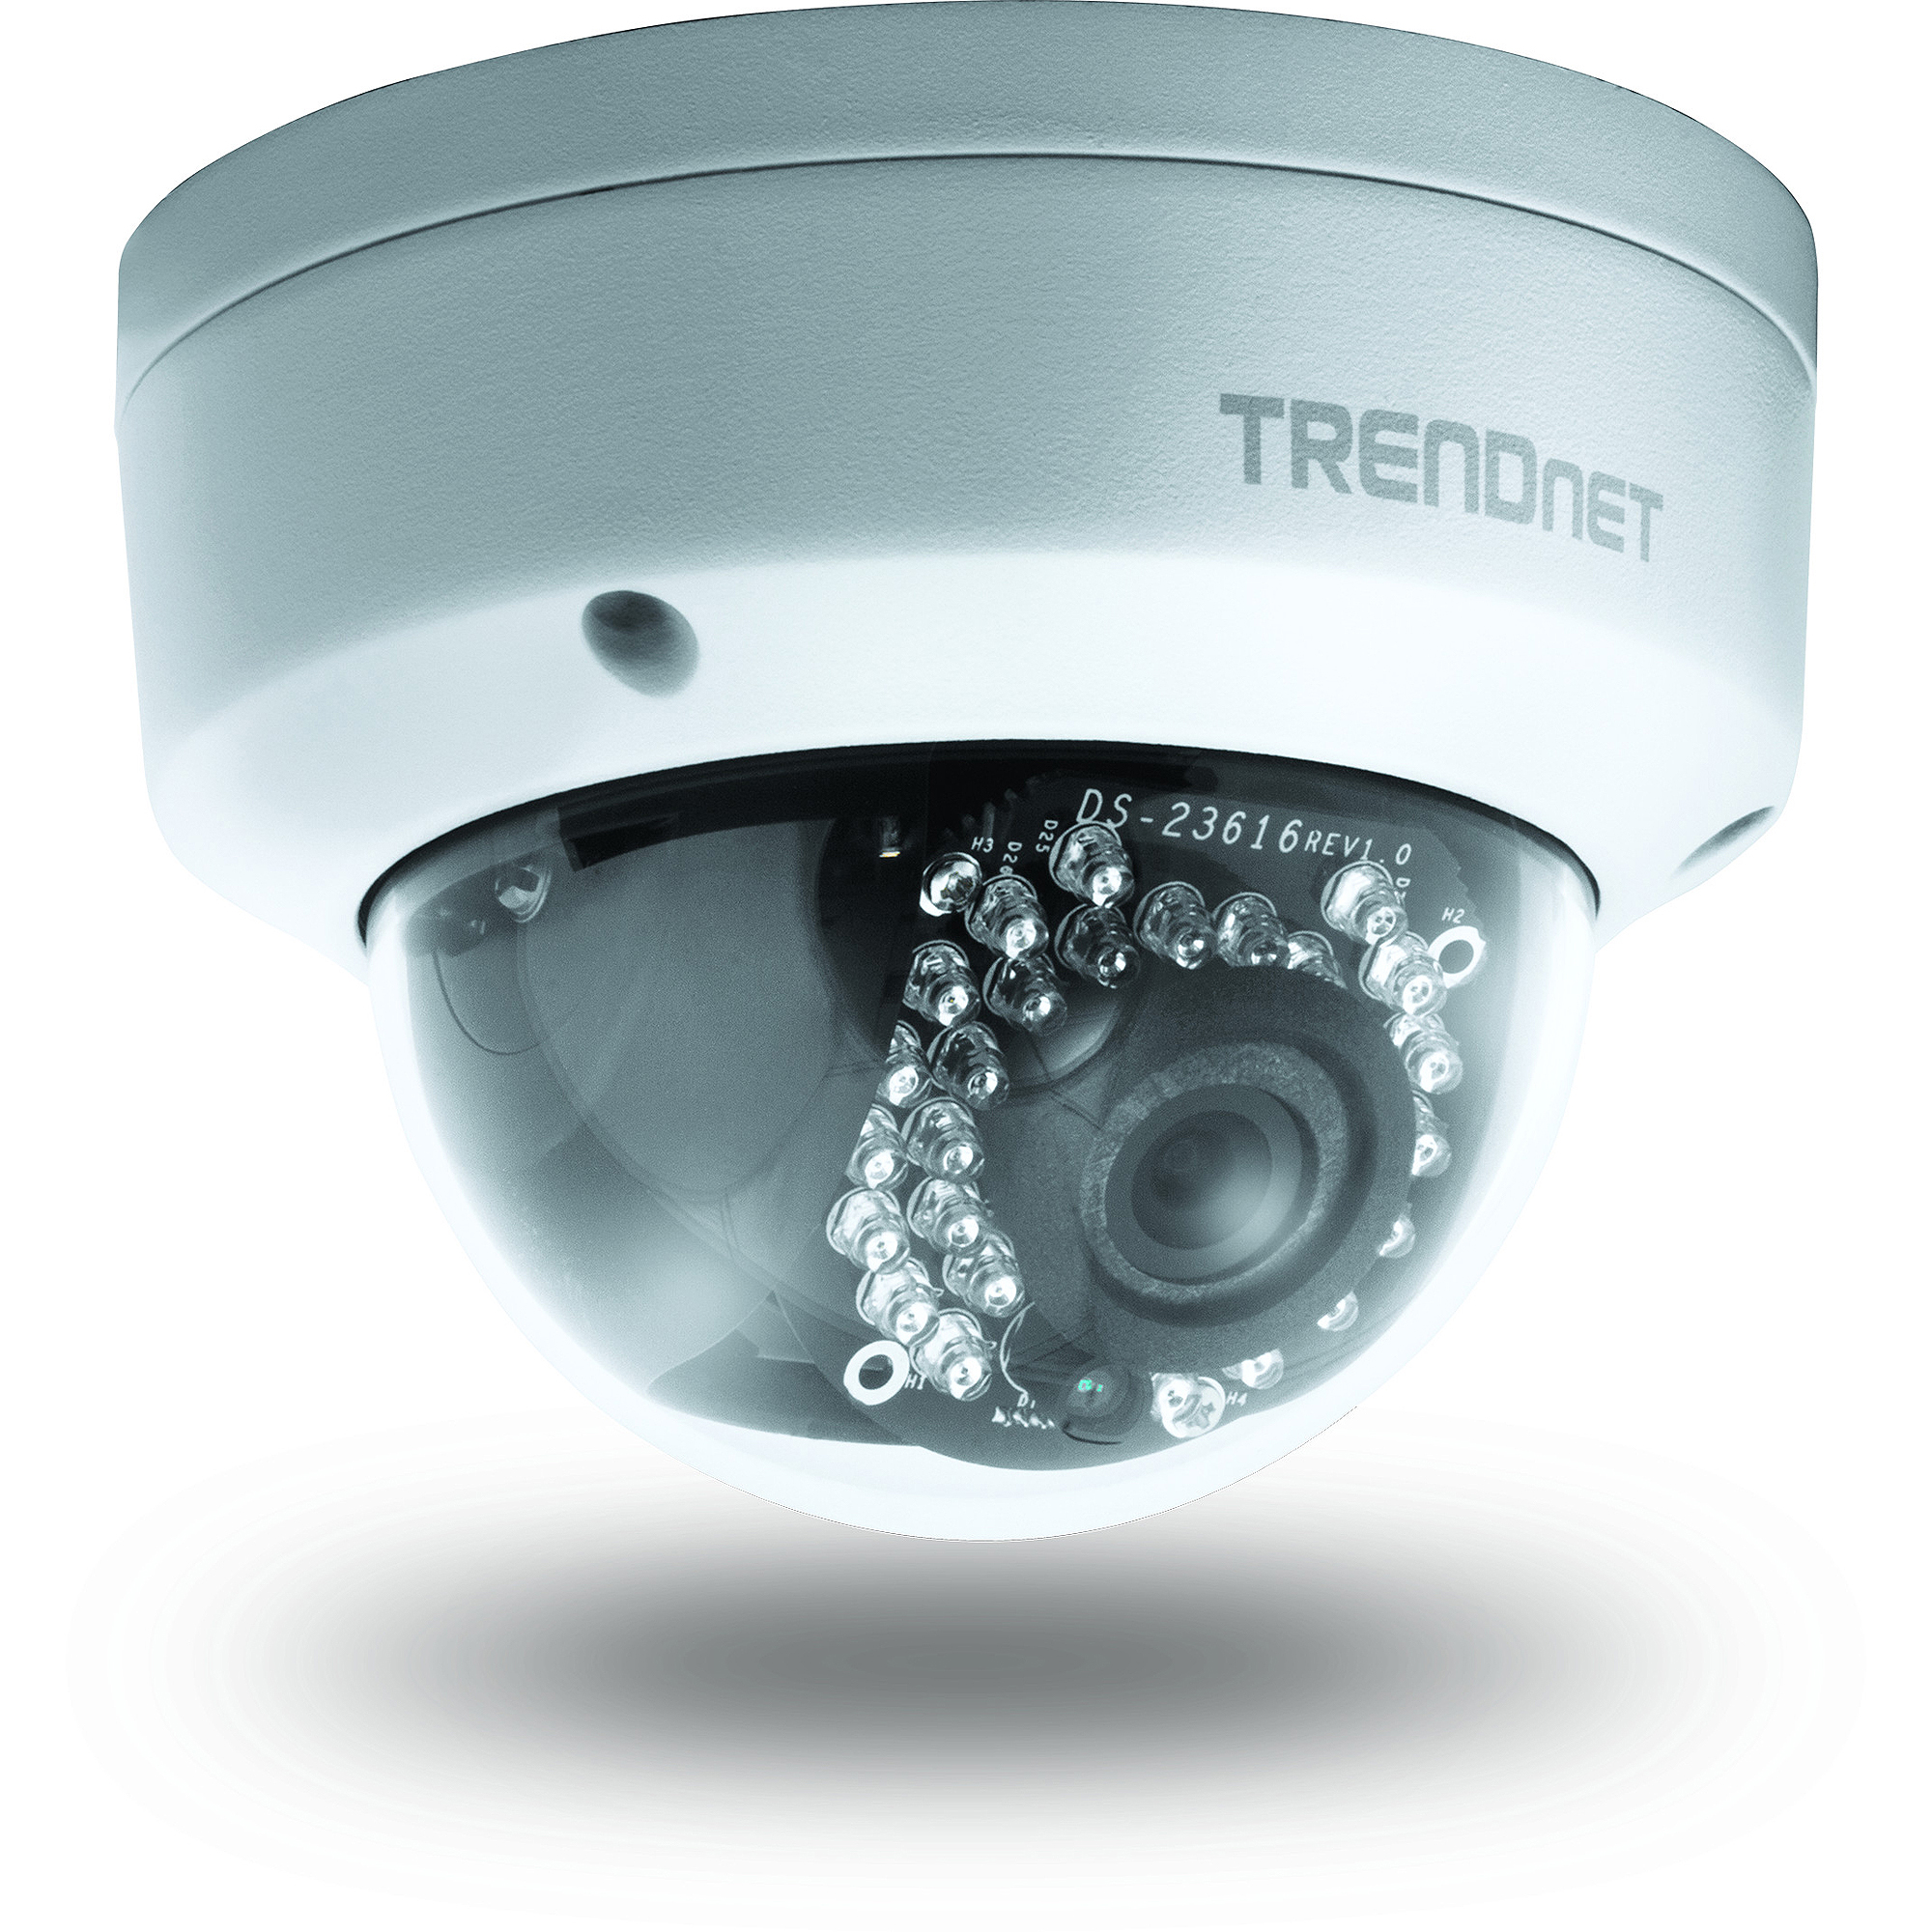 TRENDnet TV-IP311PI Outdoor 3MP PoE Dome Day/Night Camera